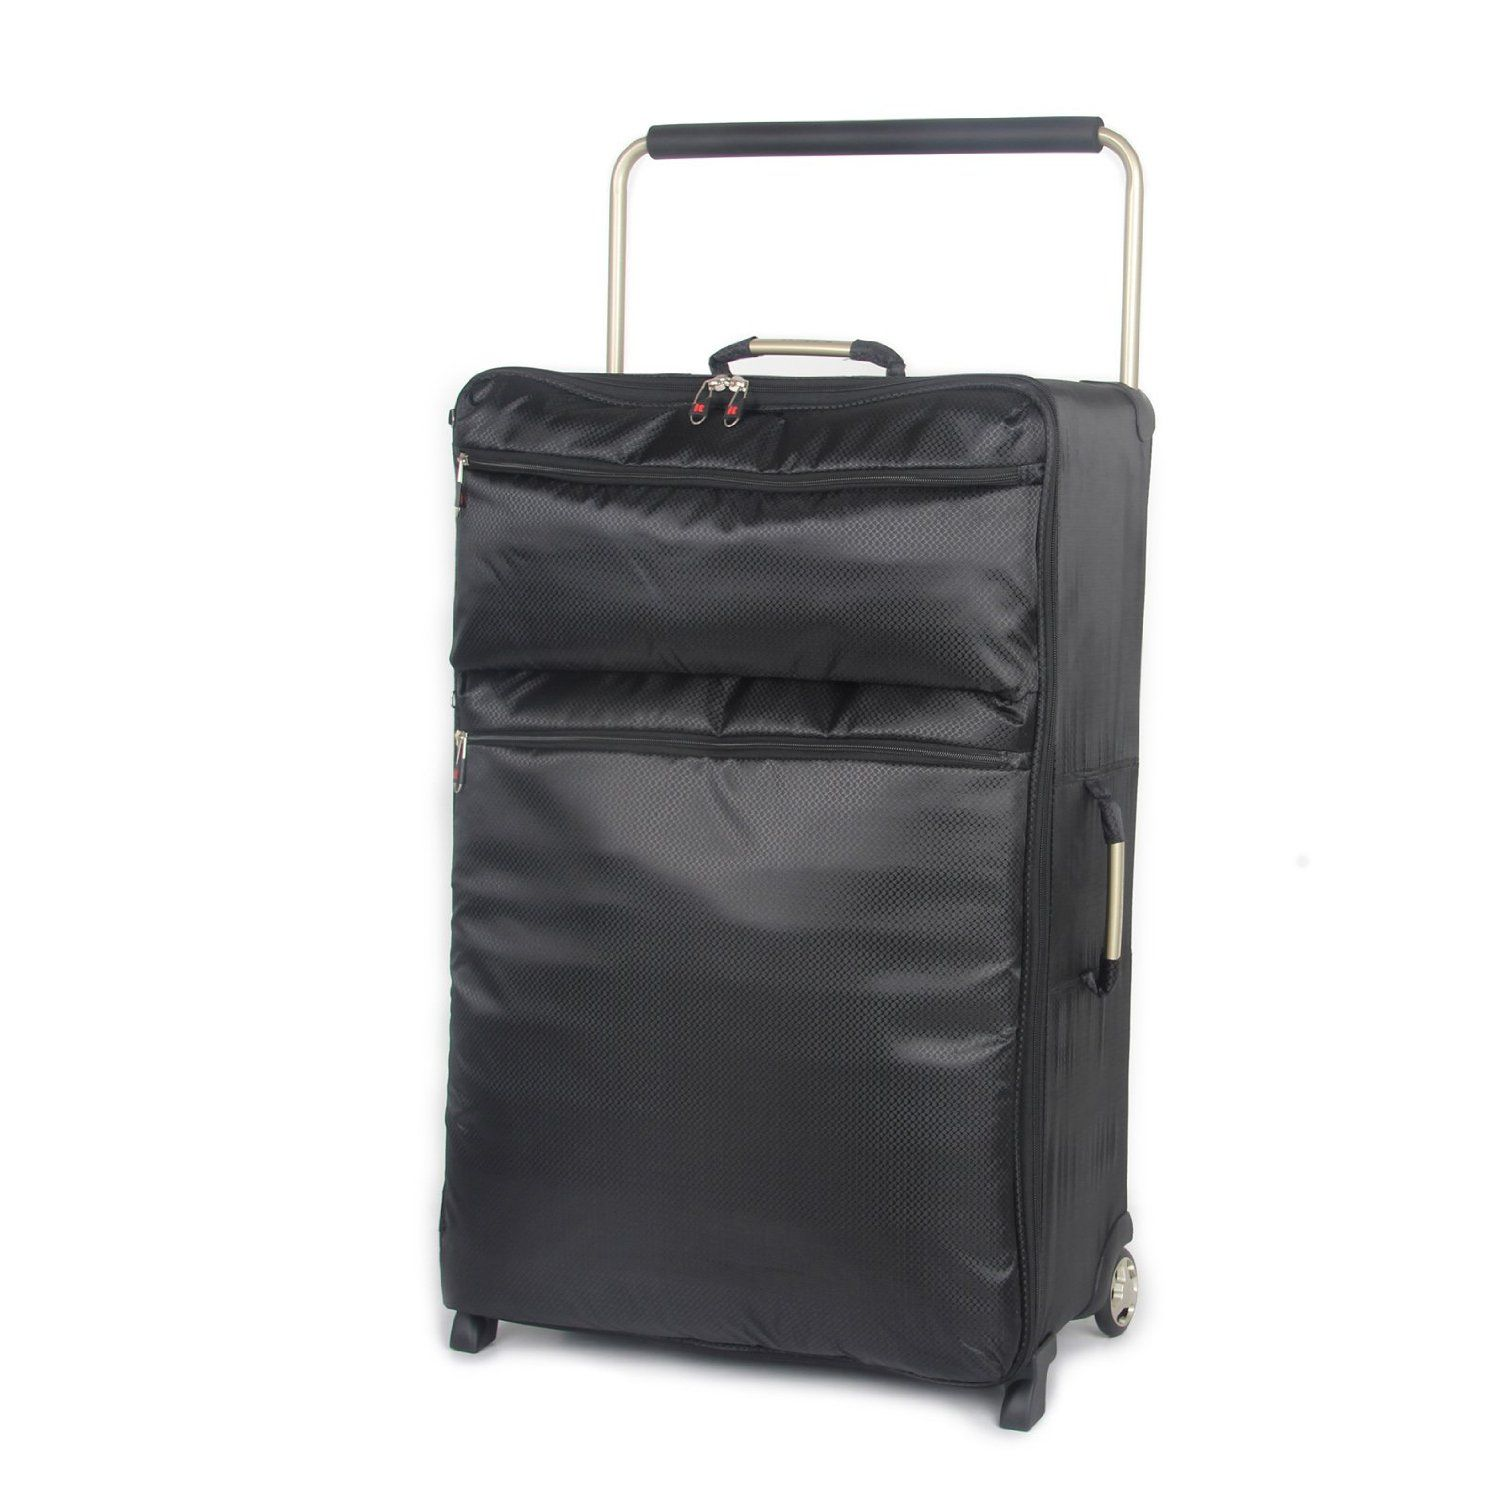 IT Luggage Black Extra Large 84cm/30